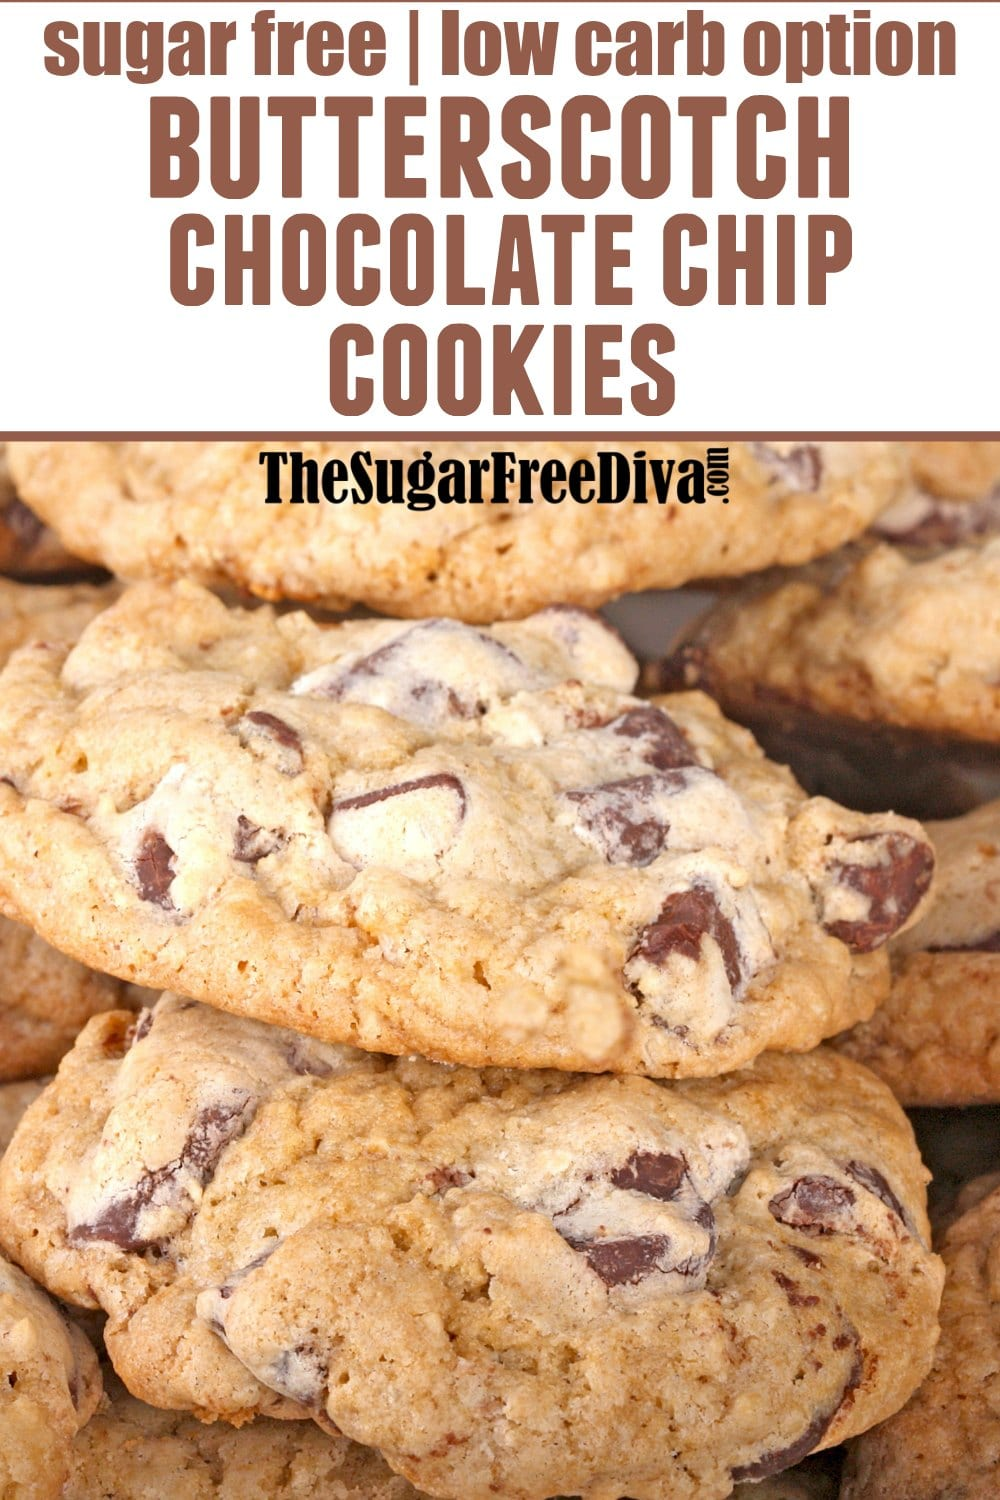 Sugar Free Butterscotch Pudding Chocolate Chip Cookies